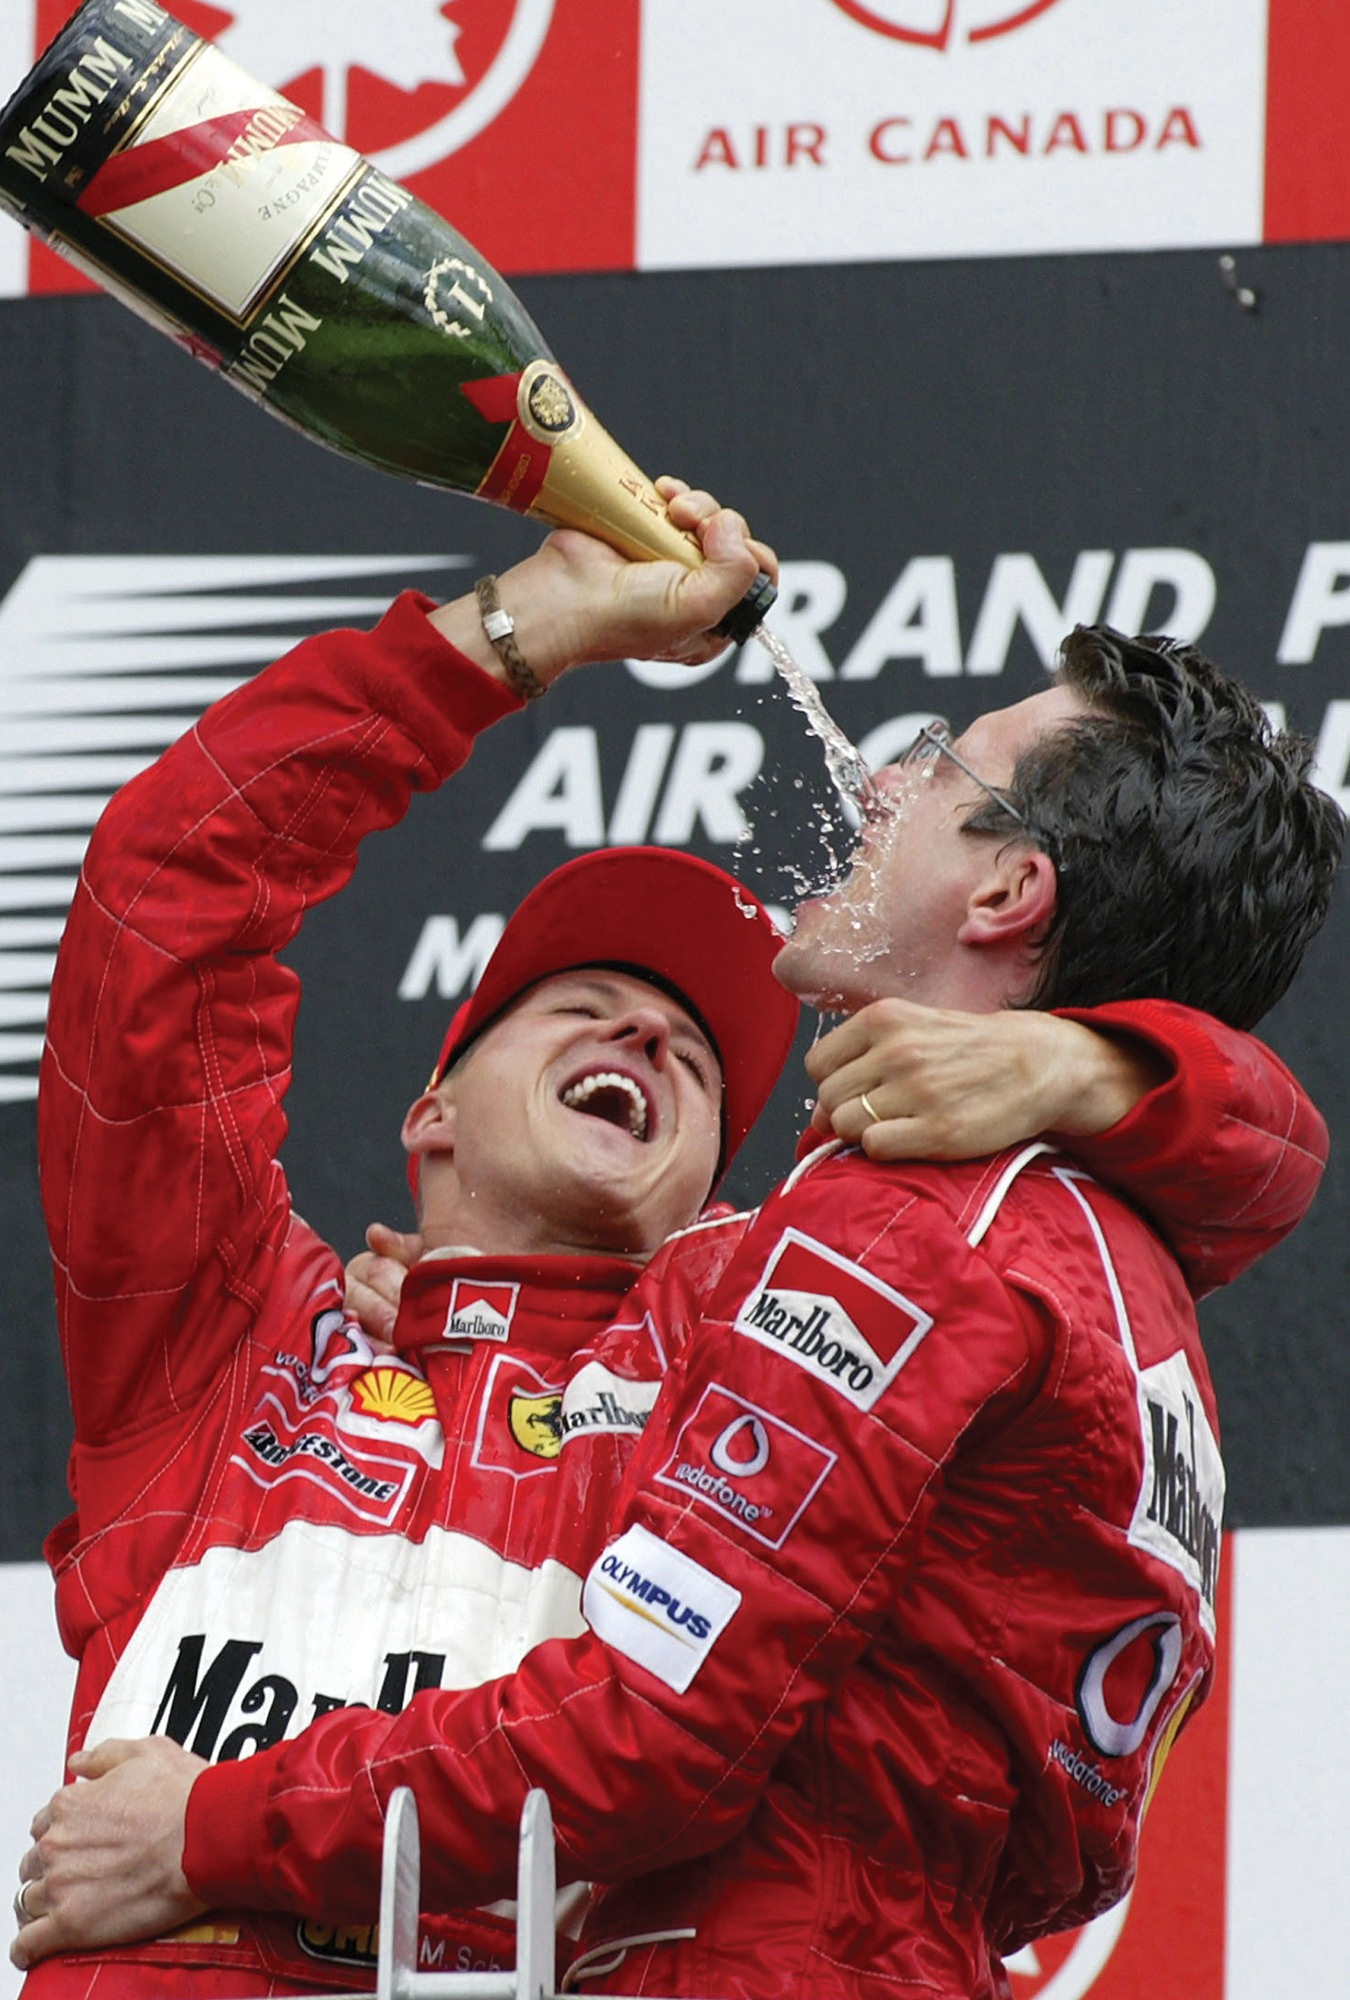 NUVO Magazine: An Exclusive Interview With Michael Schumacher